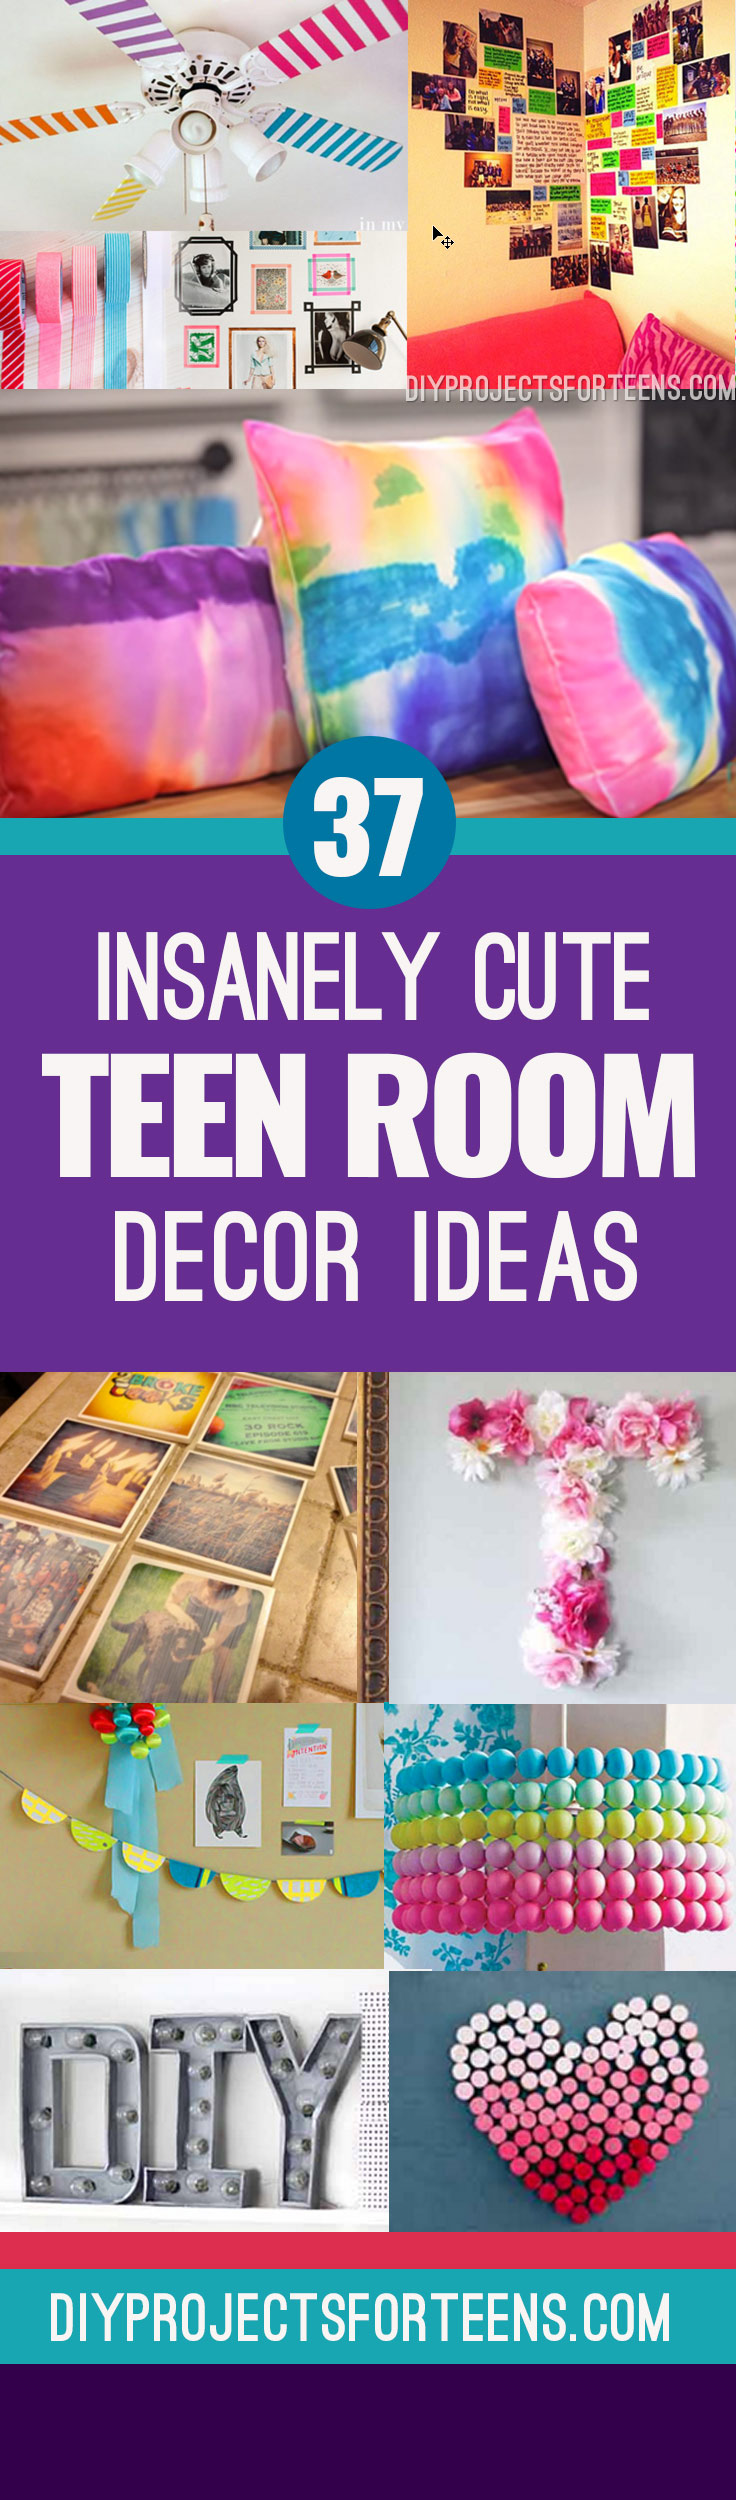 Cute DIY Room Decor Ideas for Teens   Best DIY Room Decor Ideas from  Pinterest. 37 Insanely Cute Teen Bedroom Ideas for DIY Decor   Crafts for Teens